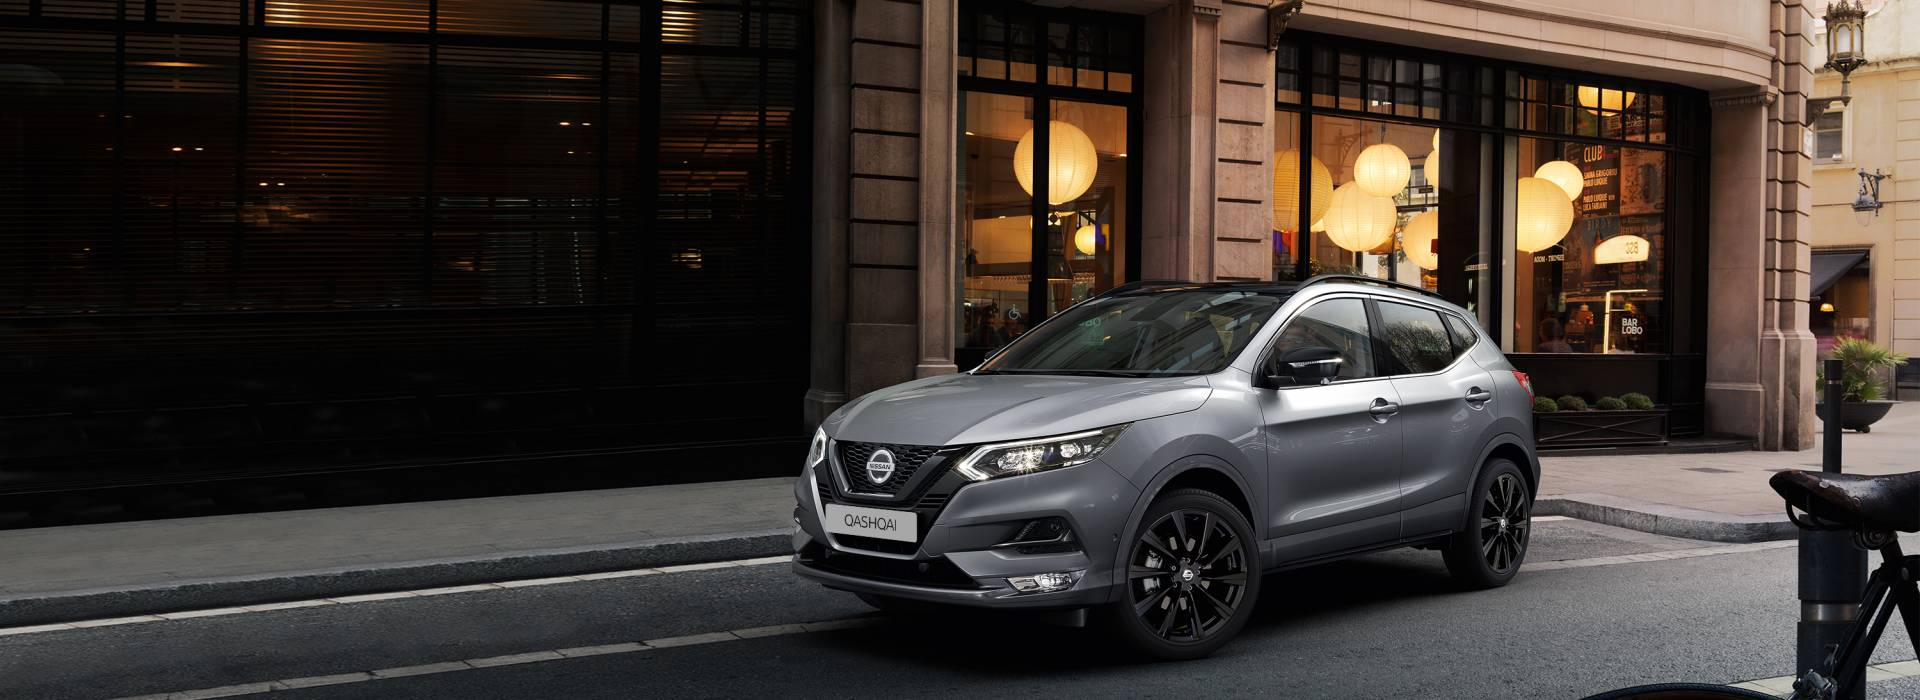 "<font size:""7""> NISSAN QASHQAI <br>MIDNIGHT EDITION <br></font>"